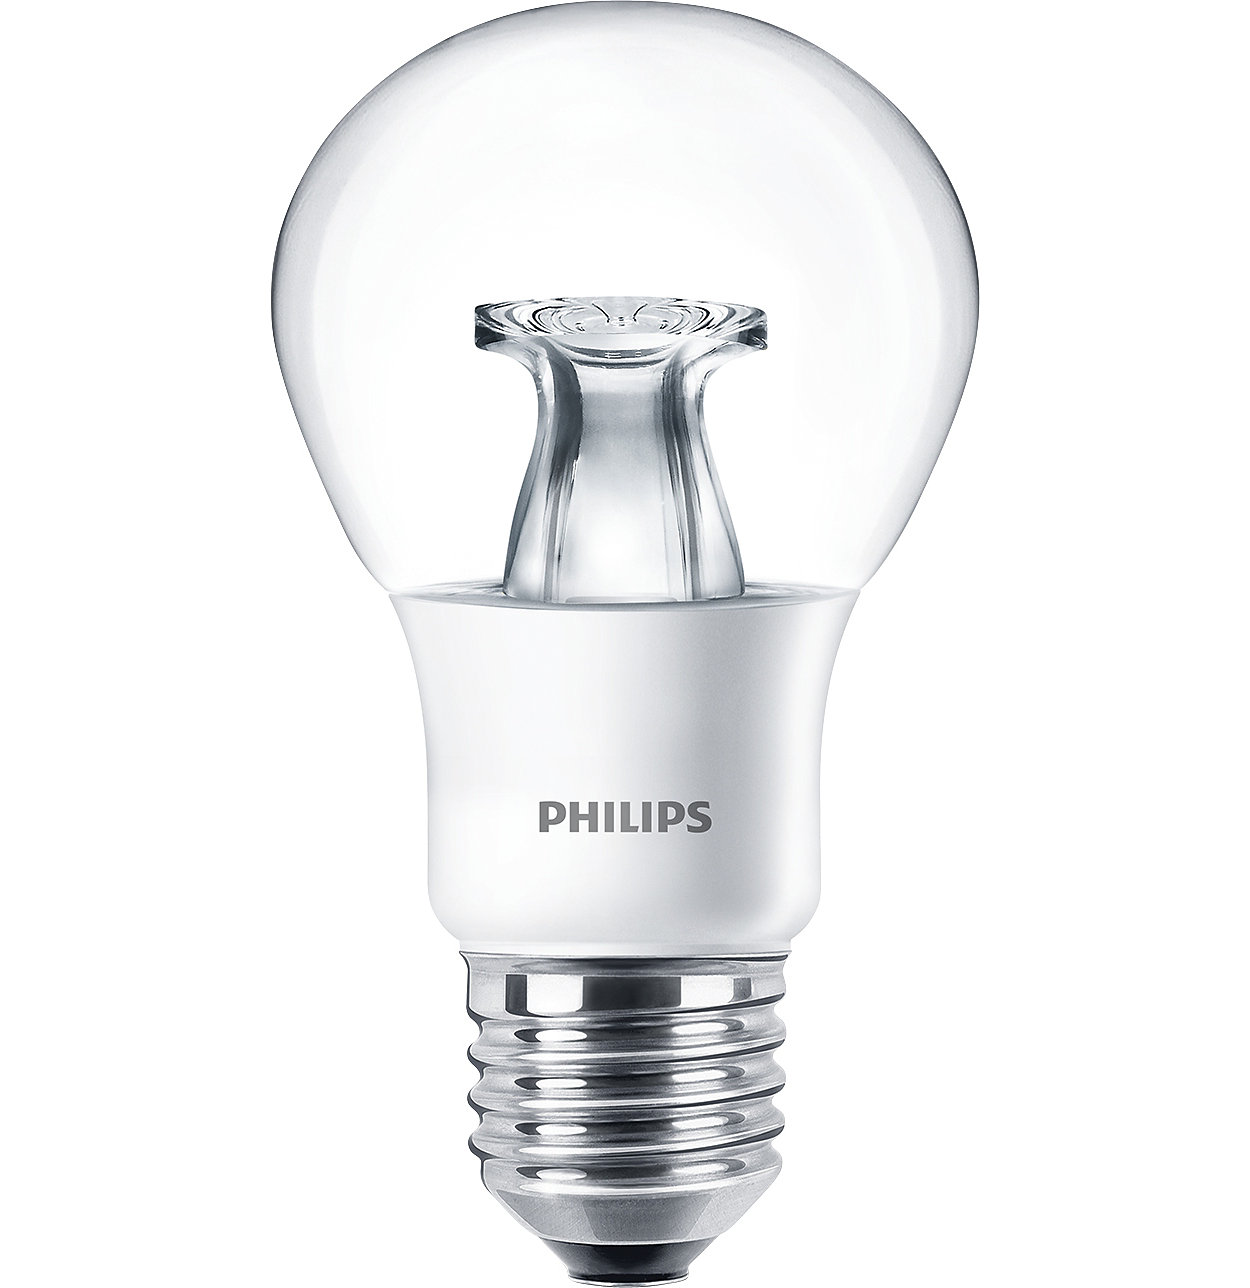 Philips MASTER LEDbulbElegantie ontmoet efficiency.